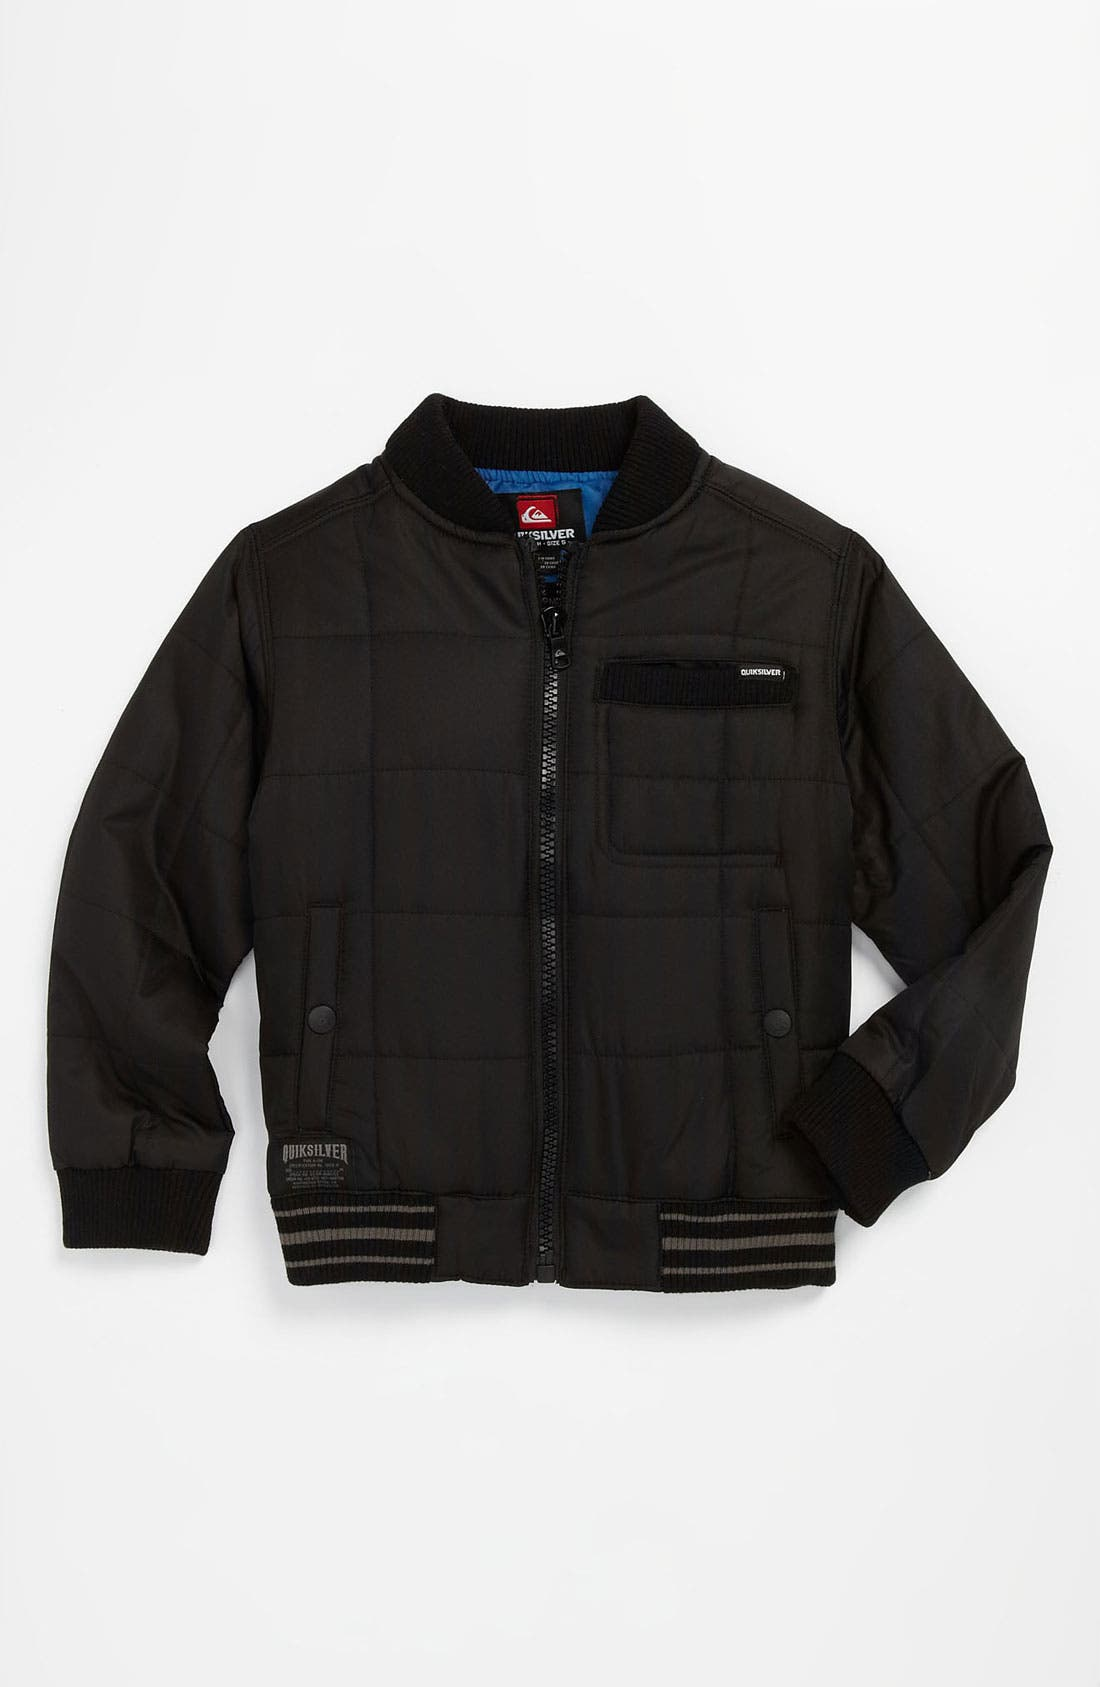 Alternate Image 1 Selected - Quiksilver 'Recon' Quilted Jacket (Little Boys)